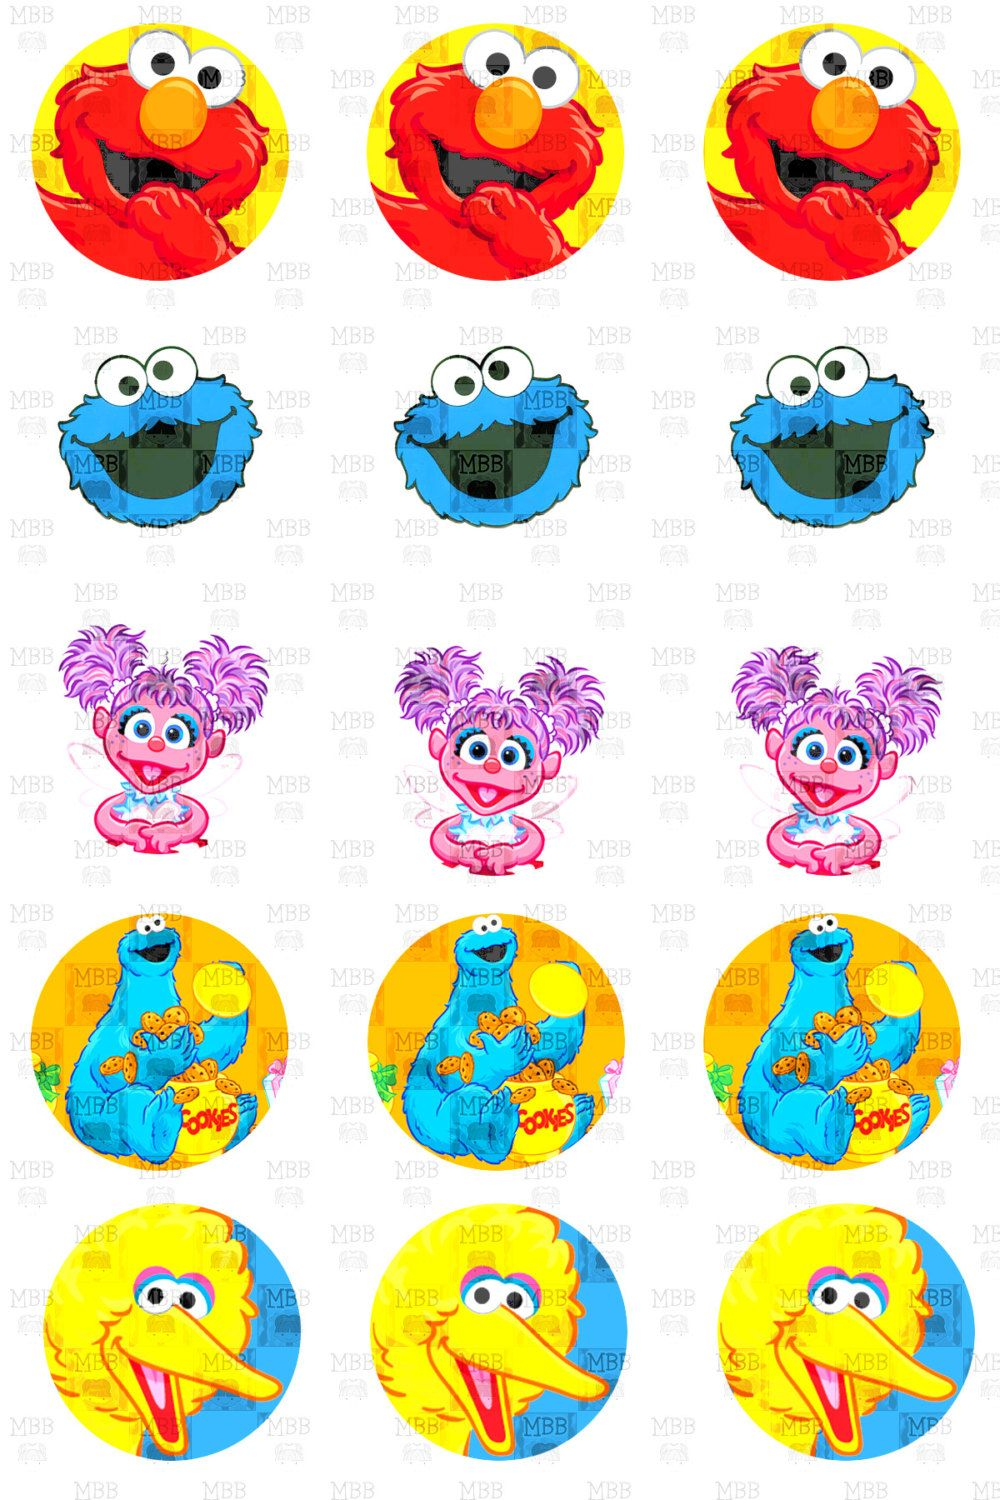 Sesame Street Big Bird Elmo Cookie Monster Abby Cadabby Digital